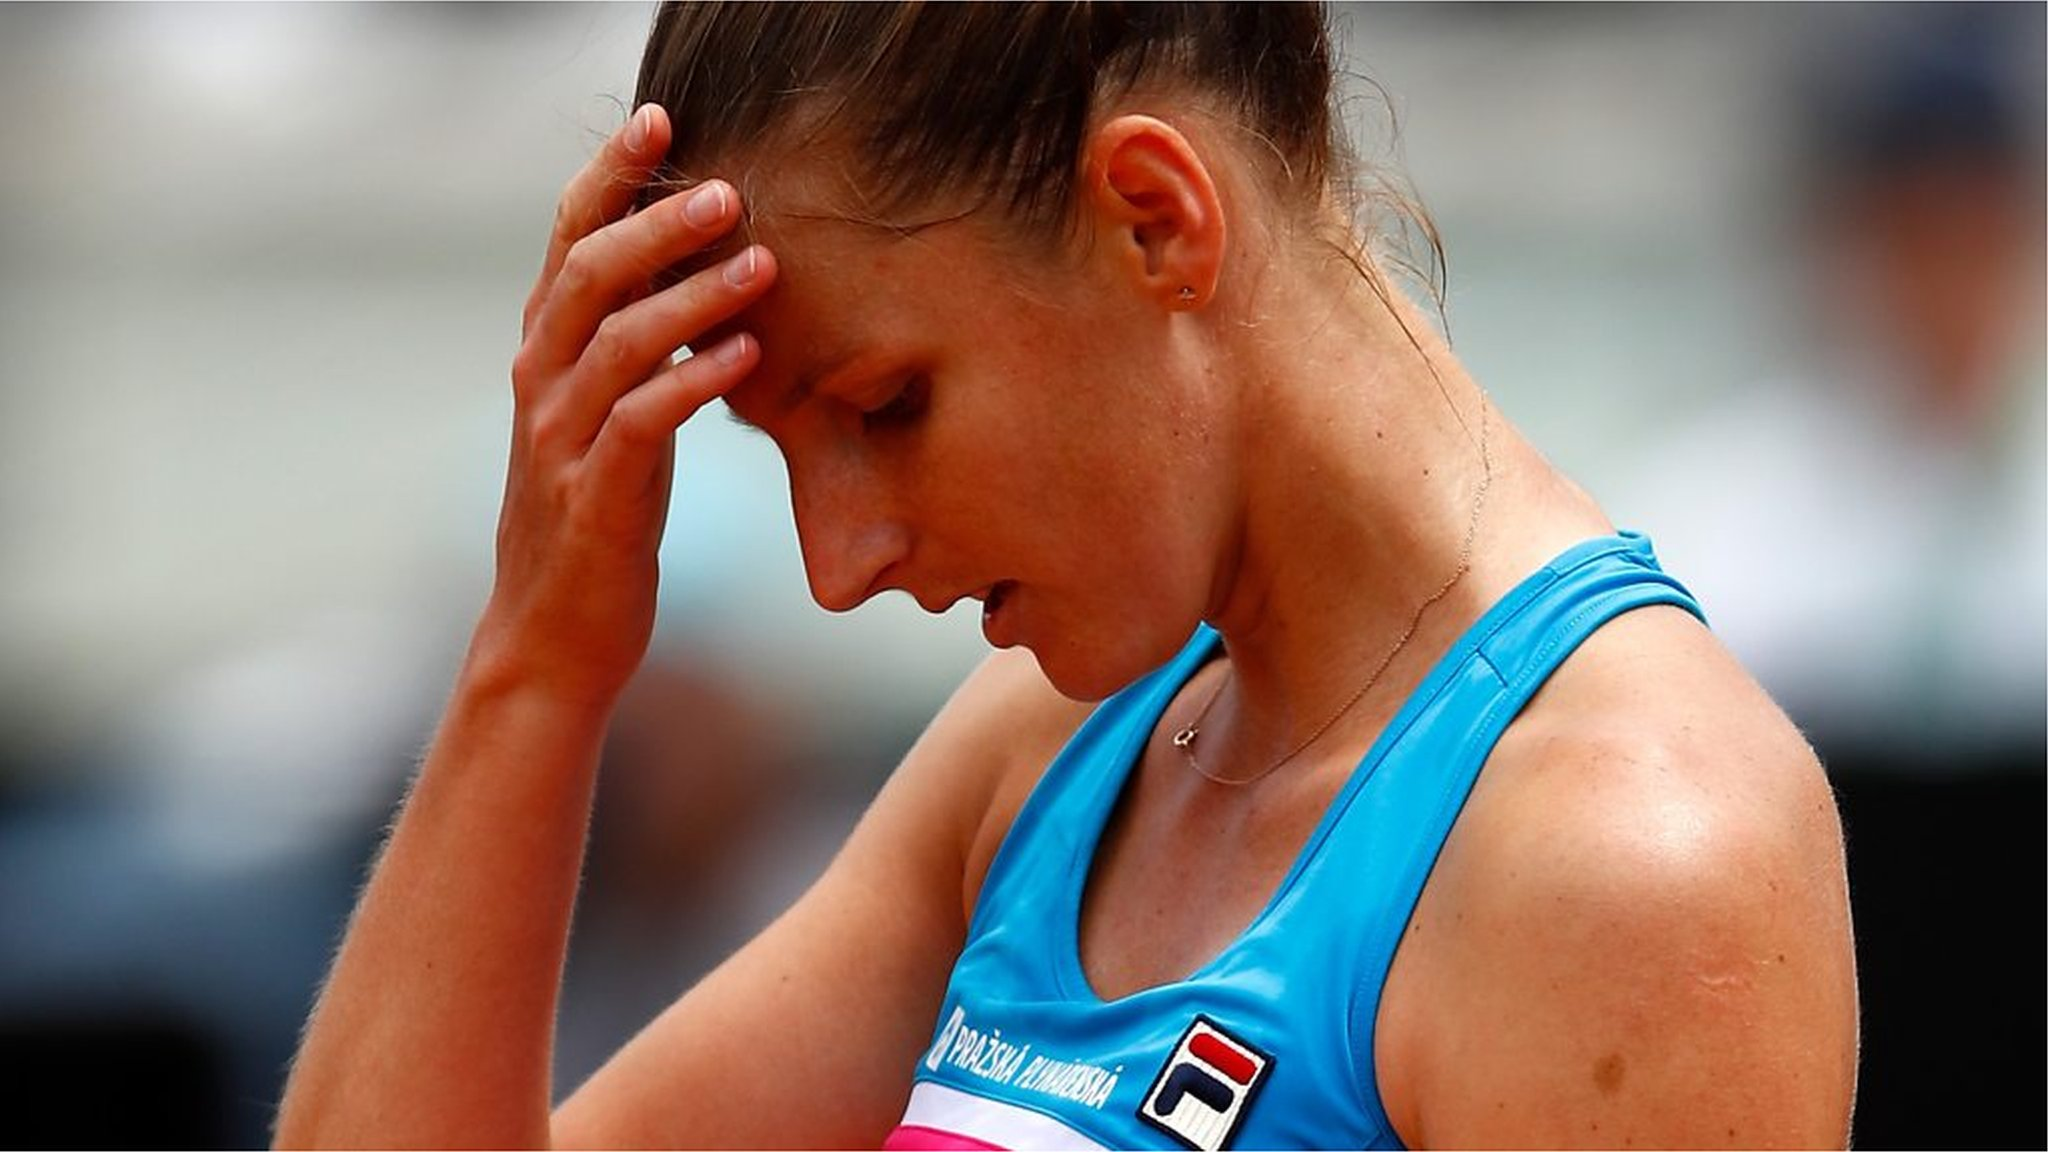 Italian Open: Karolina Pliskova attacks umpire's chair after defeat